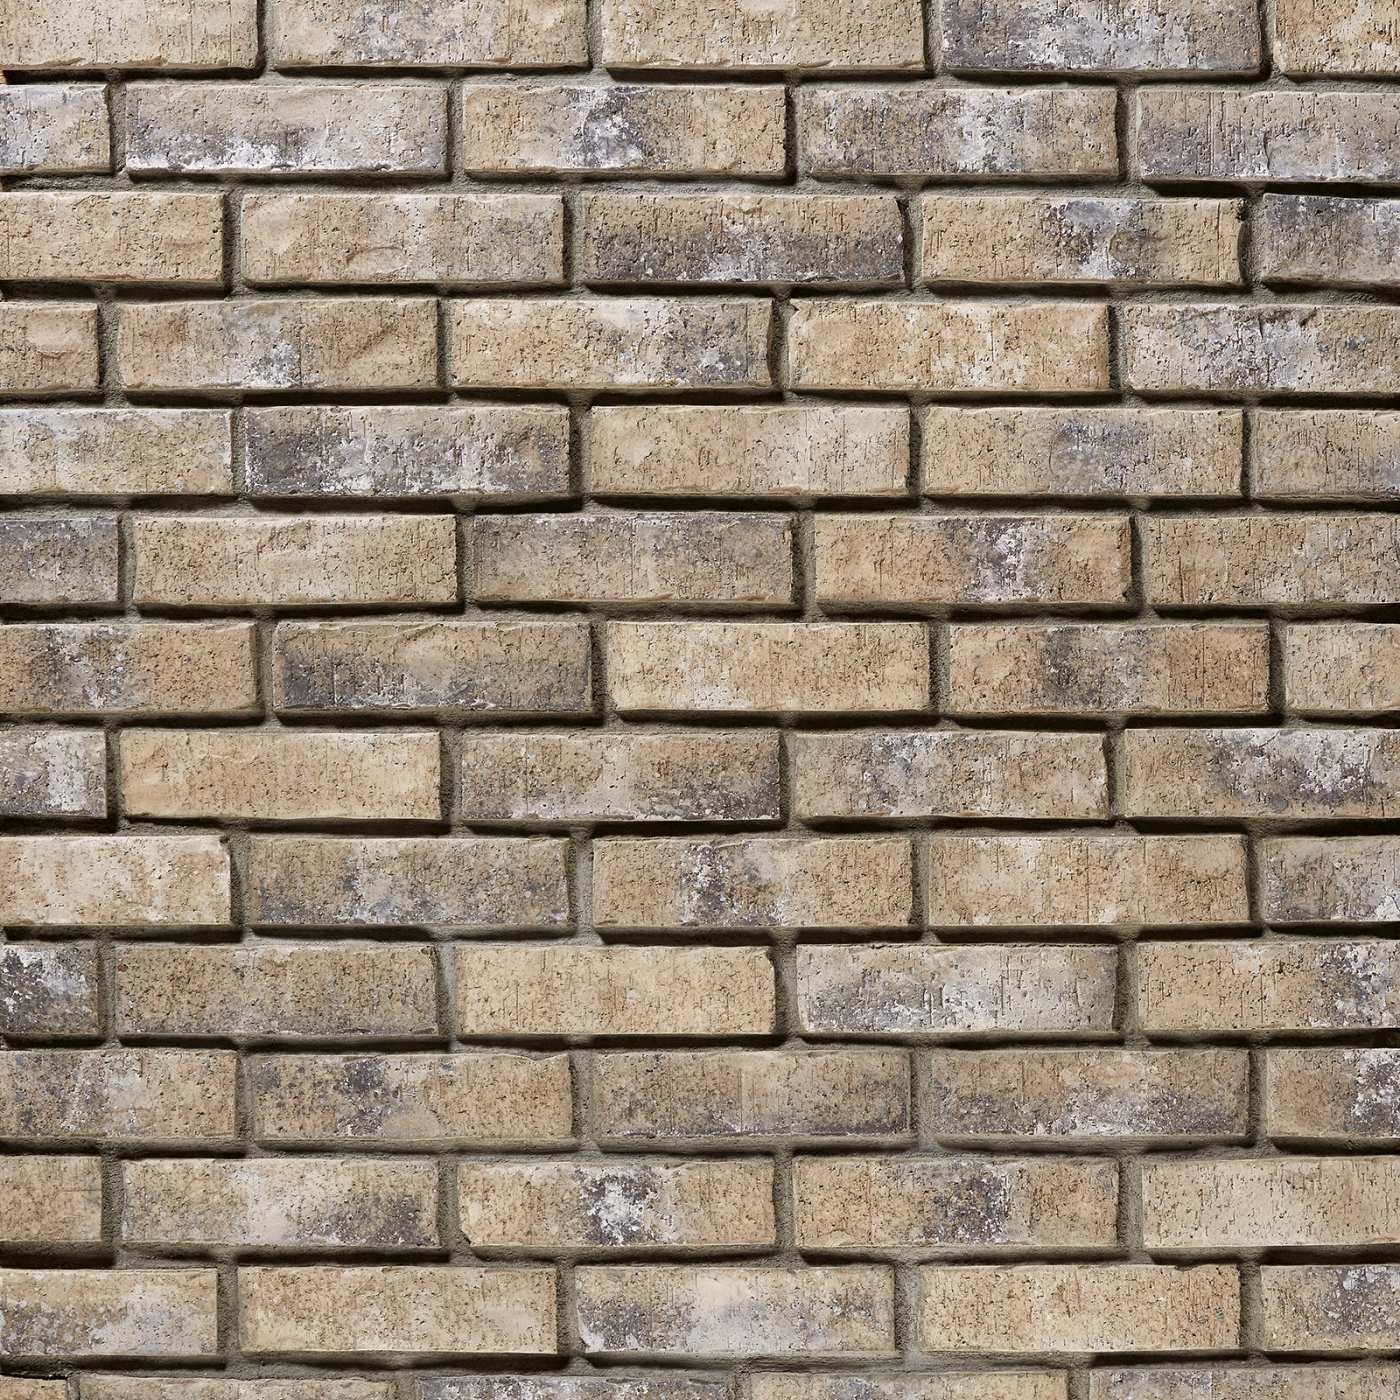 Aspen Mist King Brick Stone Veneer from Environmental StoneWorks